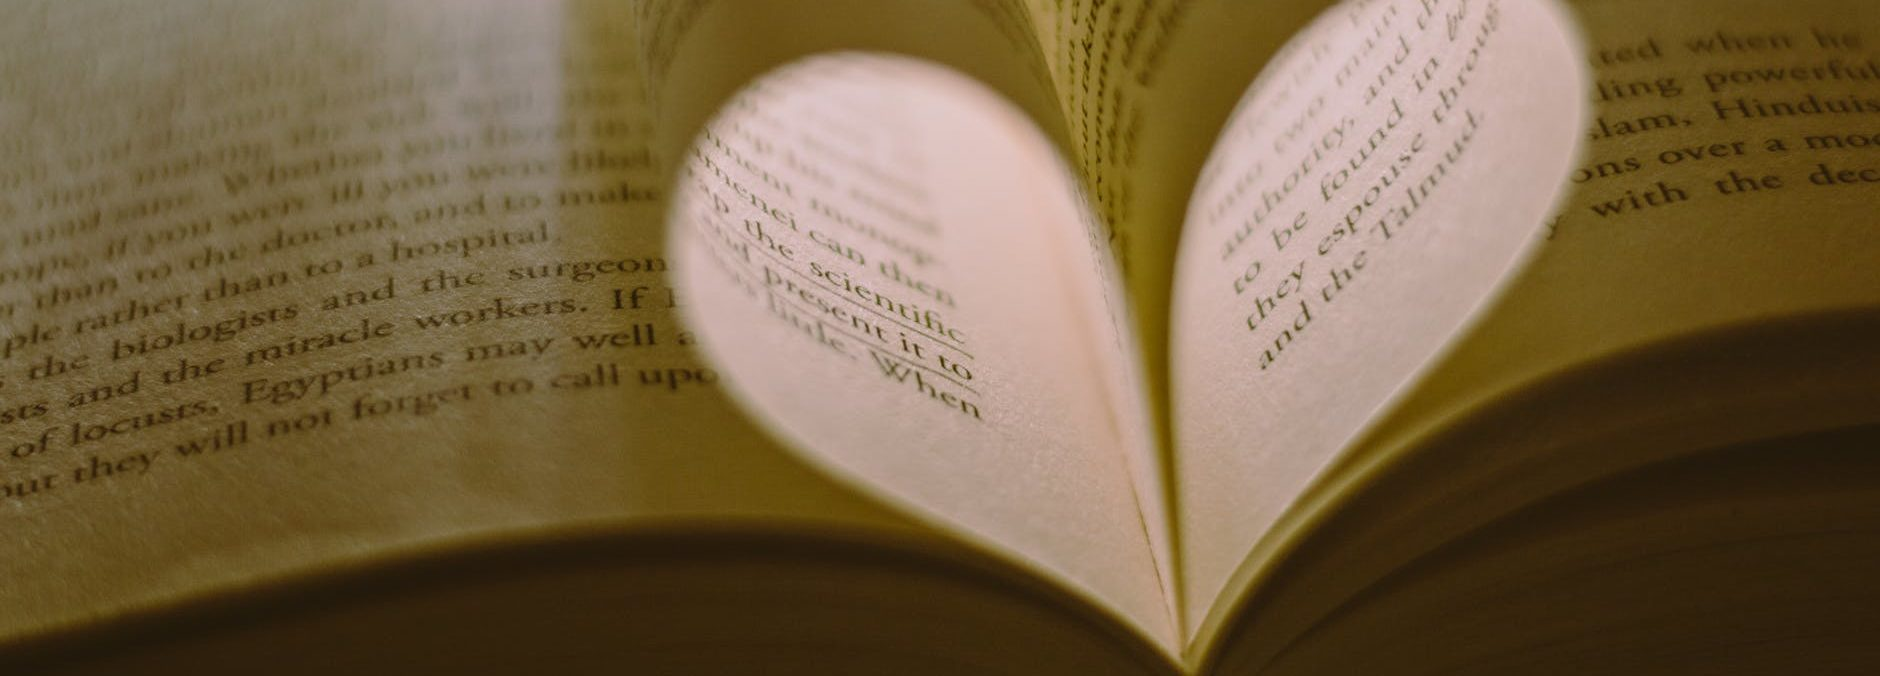 close up photo of book pages